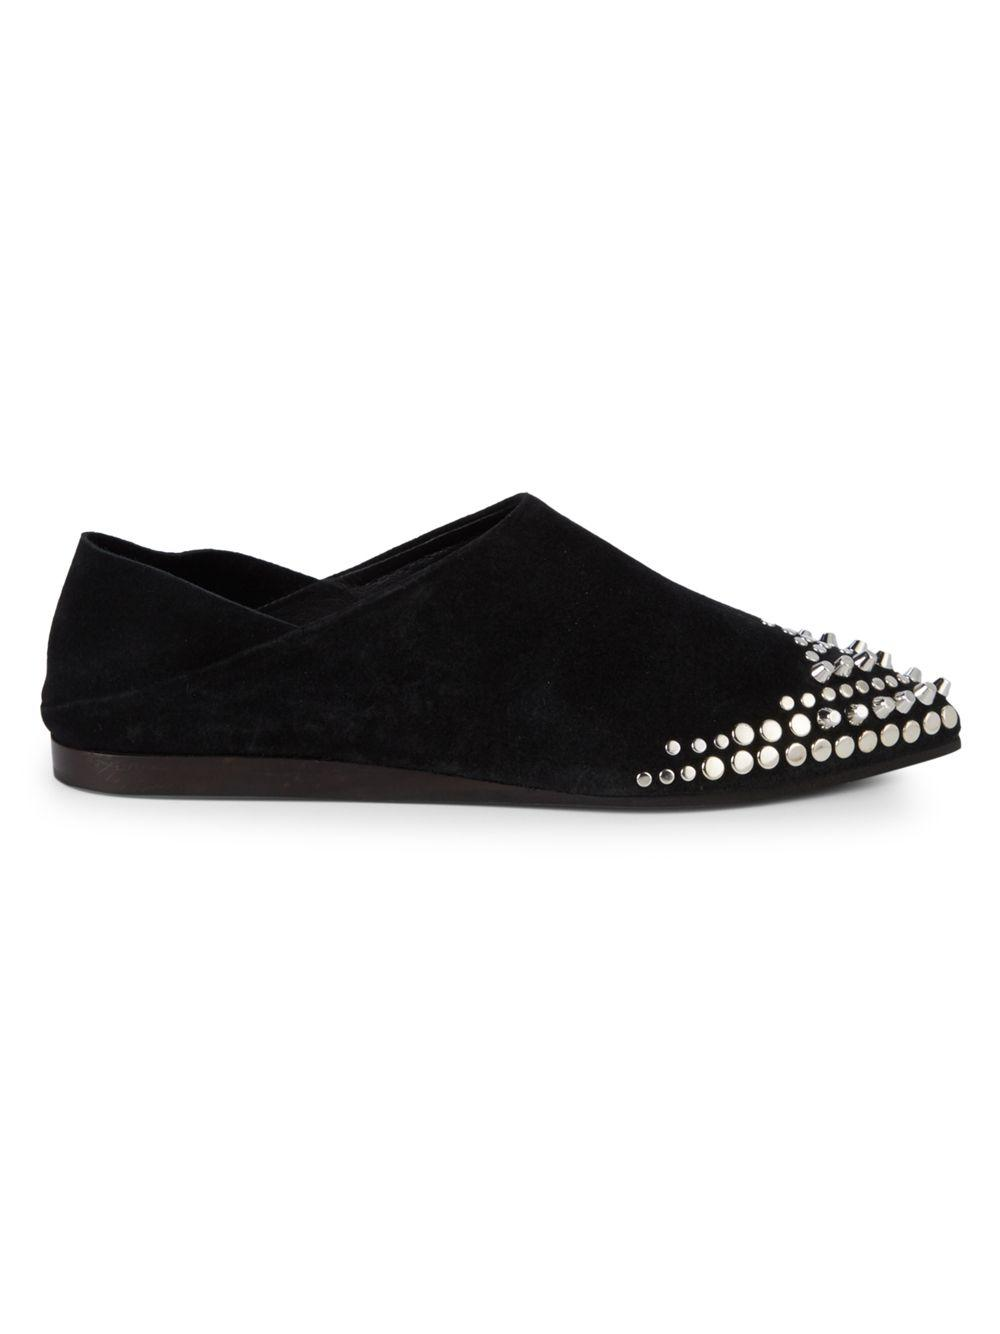 b4bc5486e85 Lyst - McQ Liberty Studded Loafers in Black